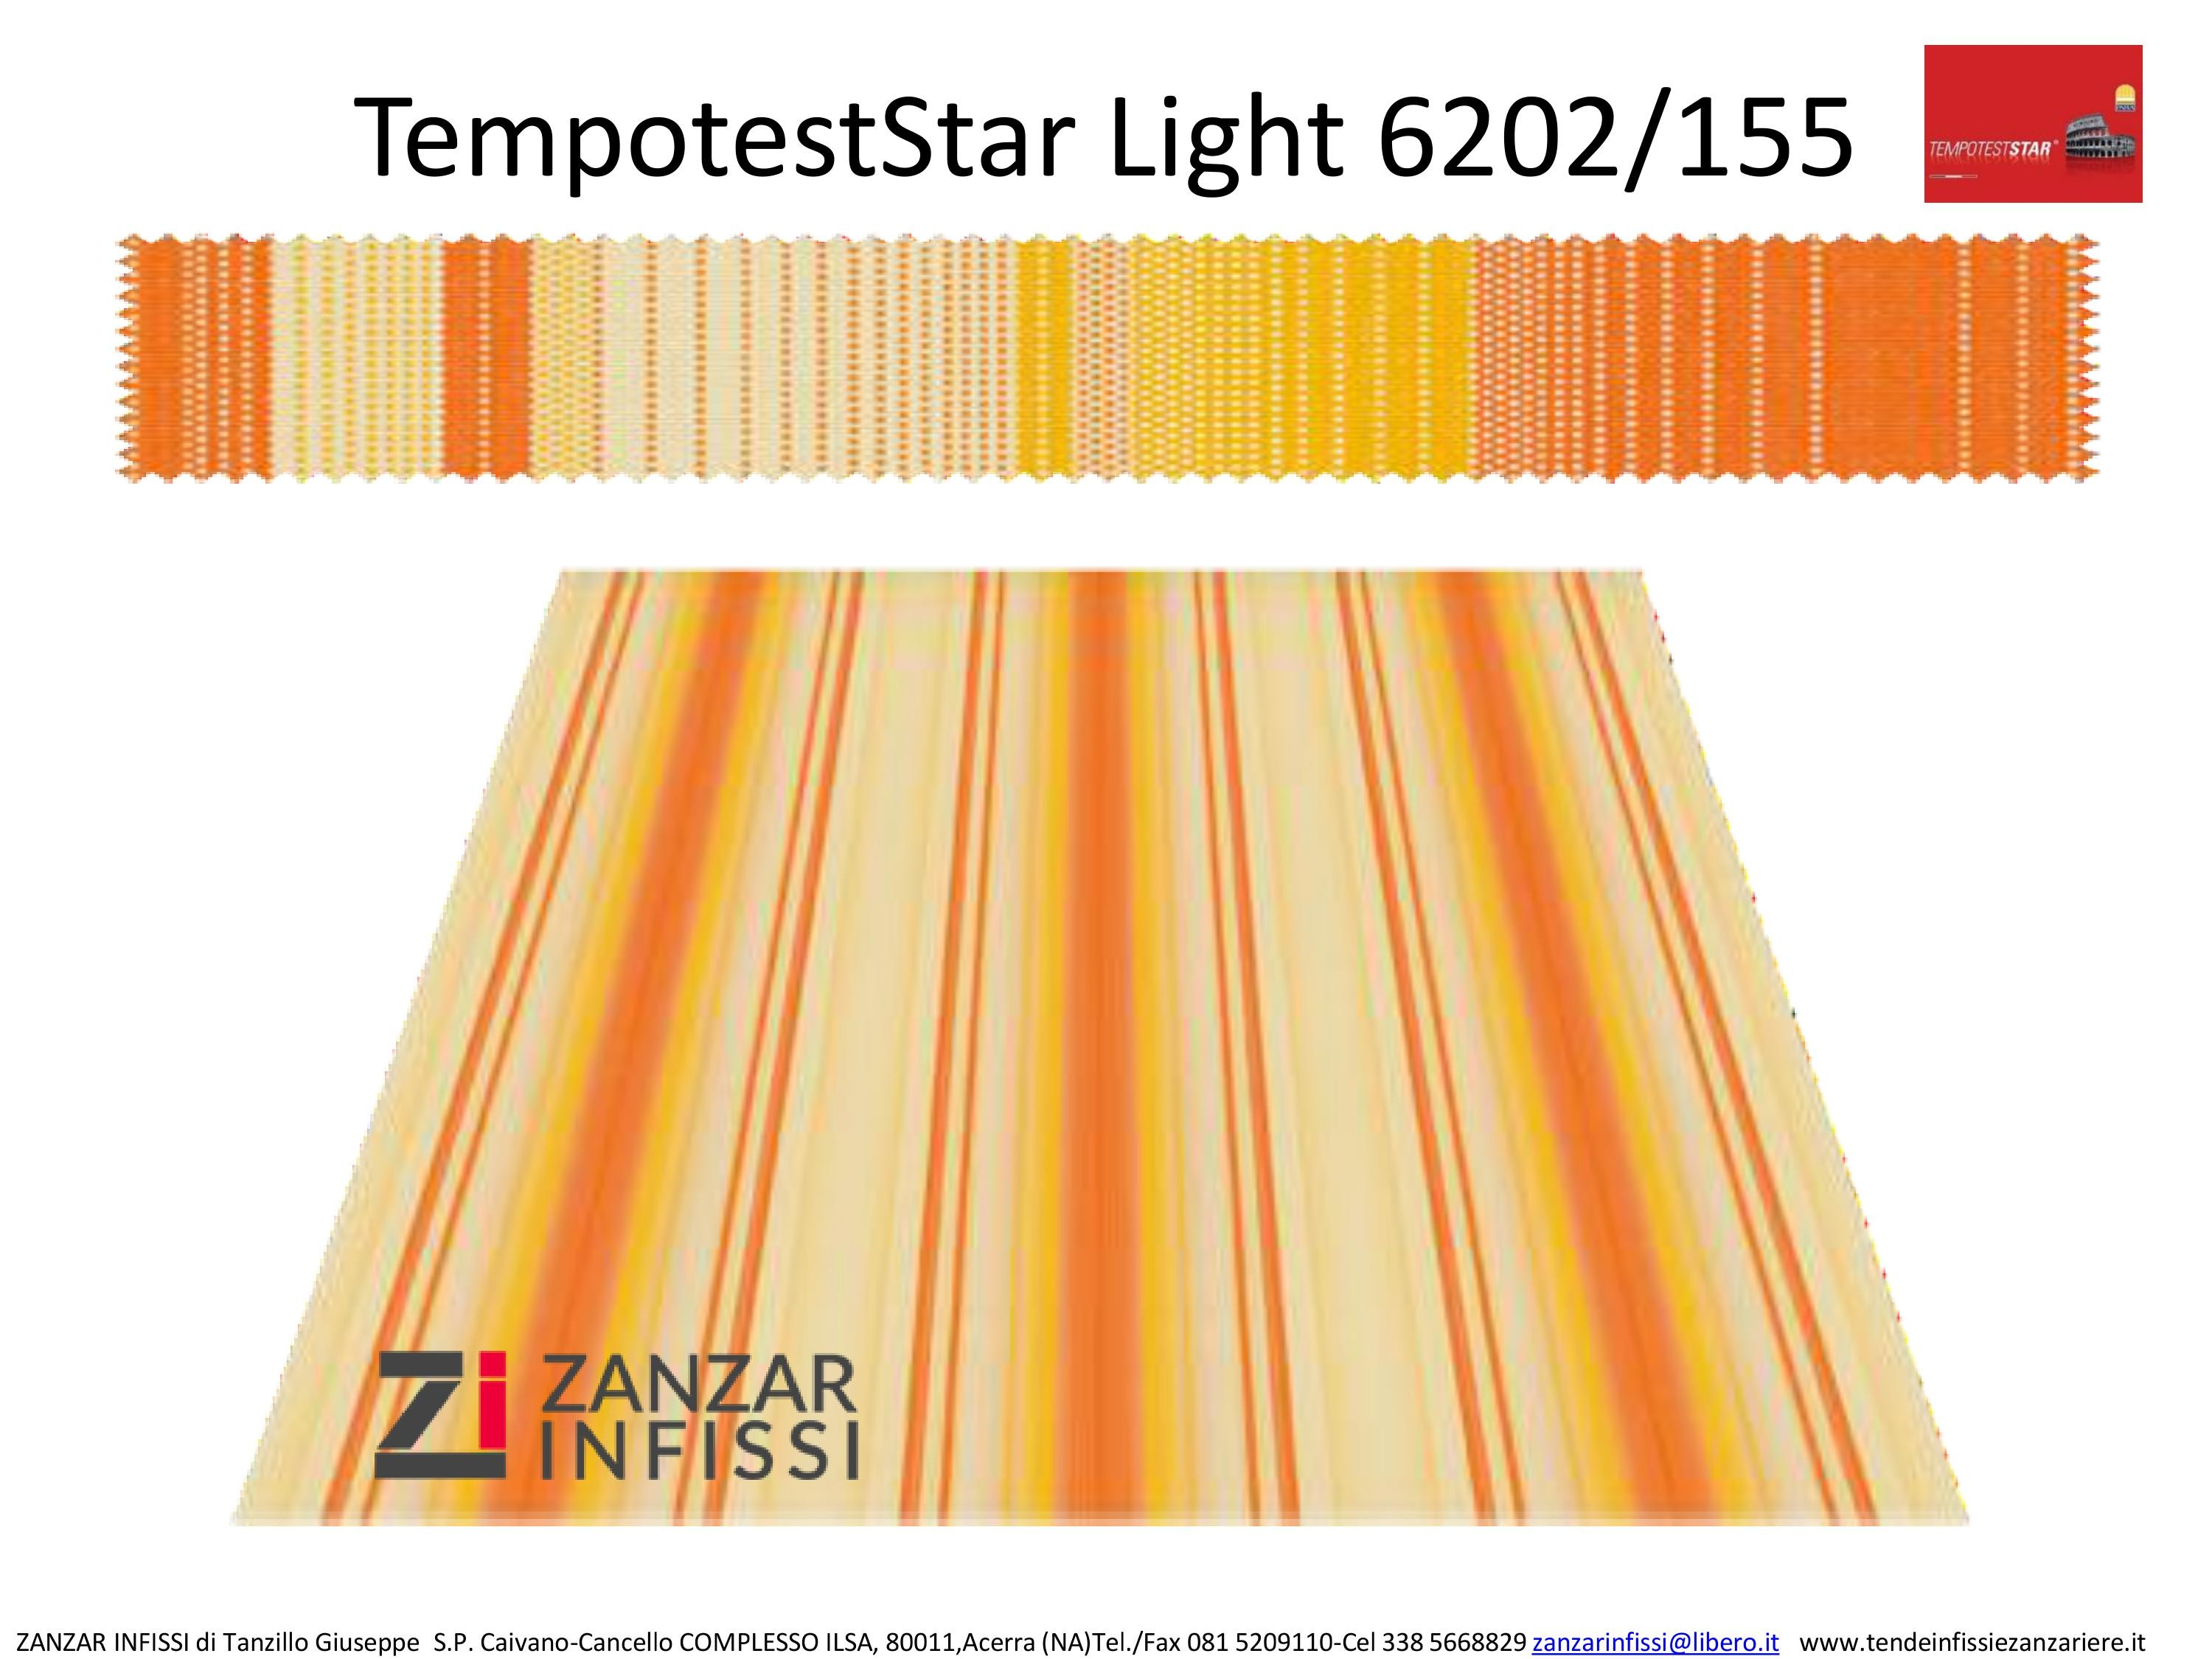 Tempotest star light 6202/155